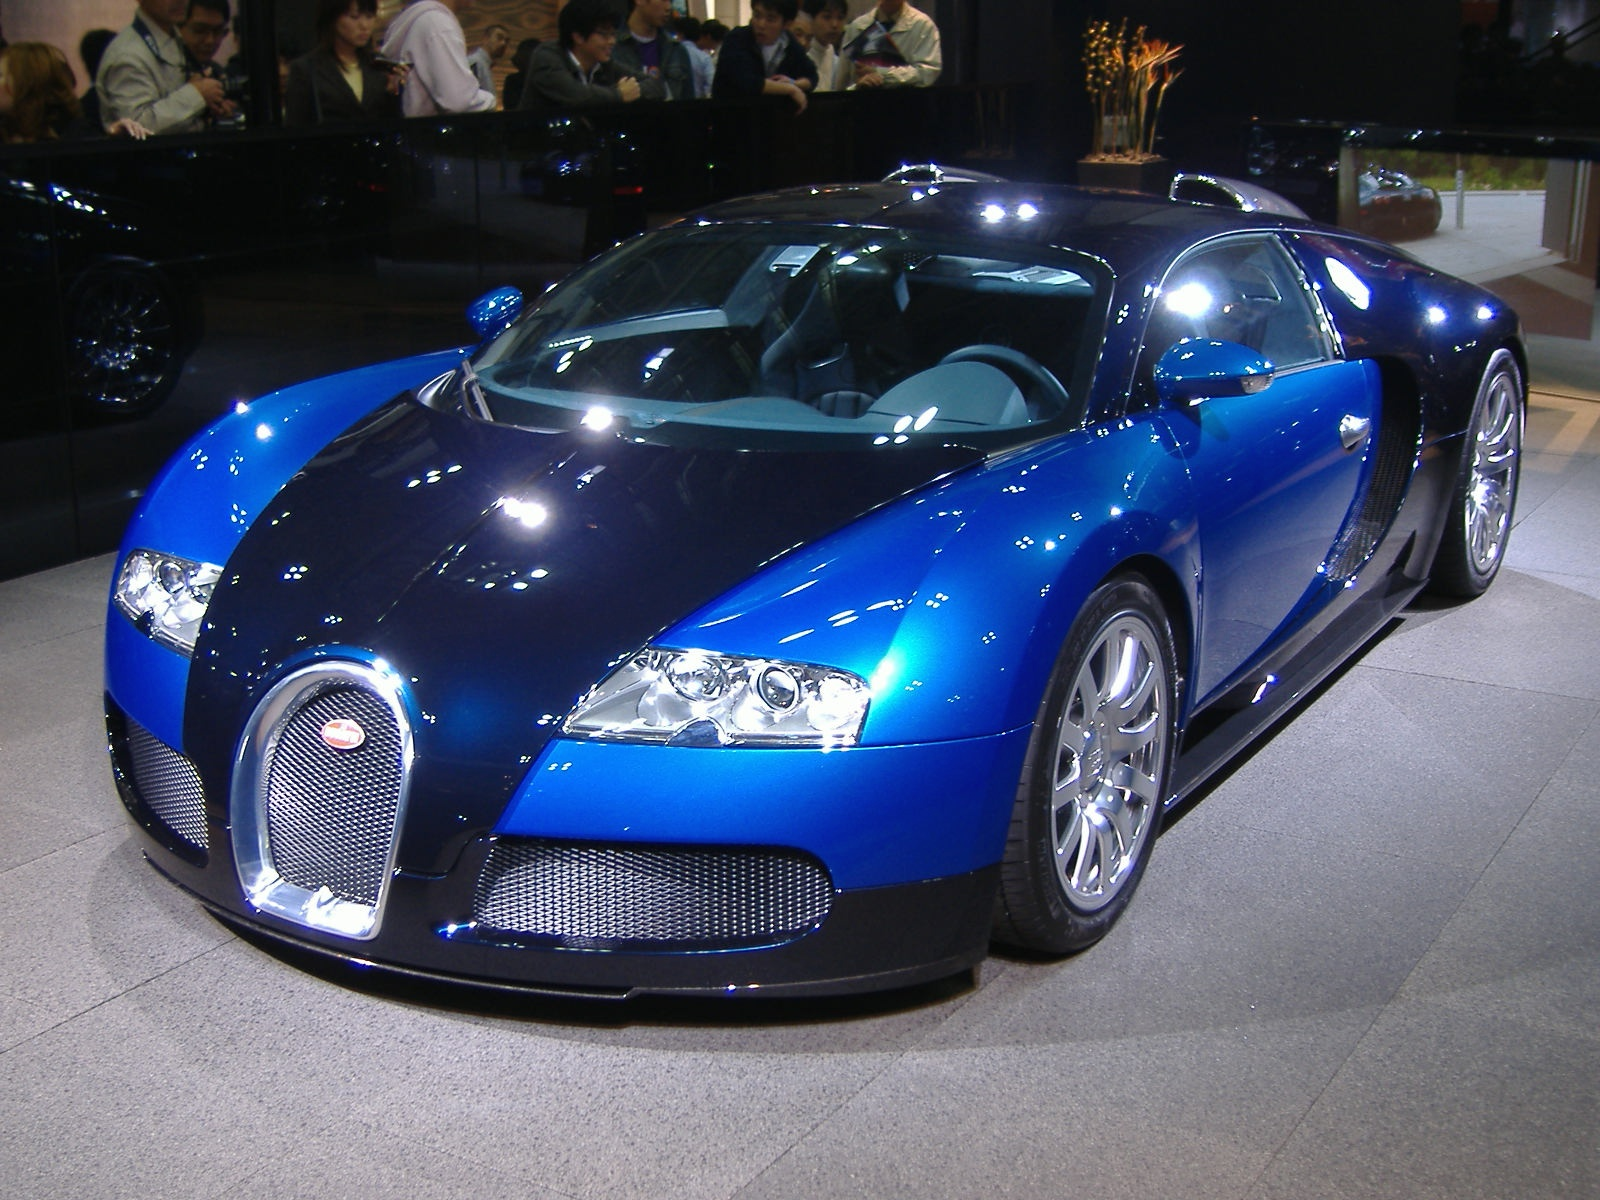 https://upload.wikimedia.org/wikipedia/commons/6/6b/Bugatti_veyron_in_Tokyo.jpg